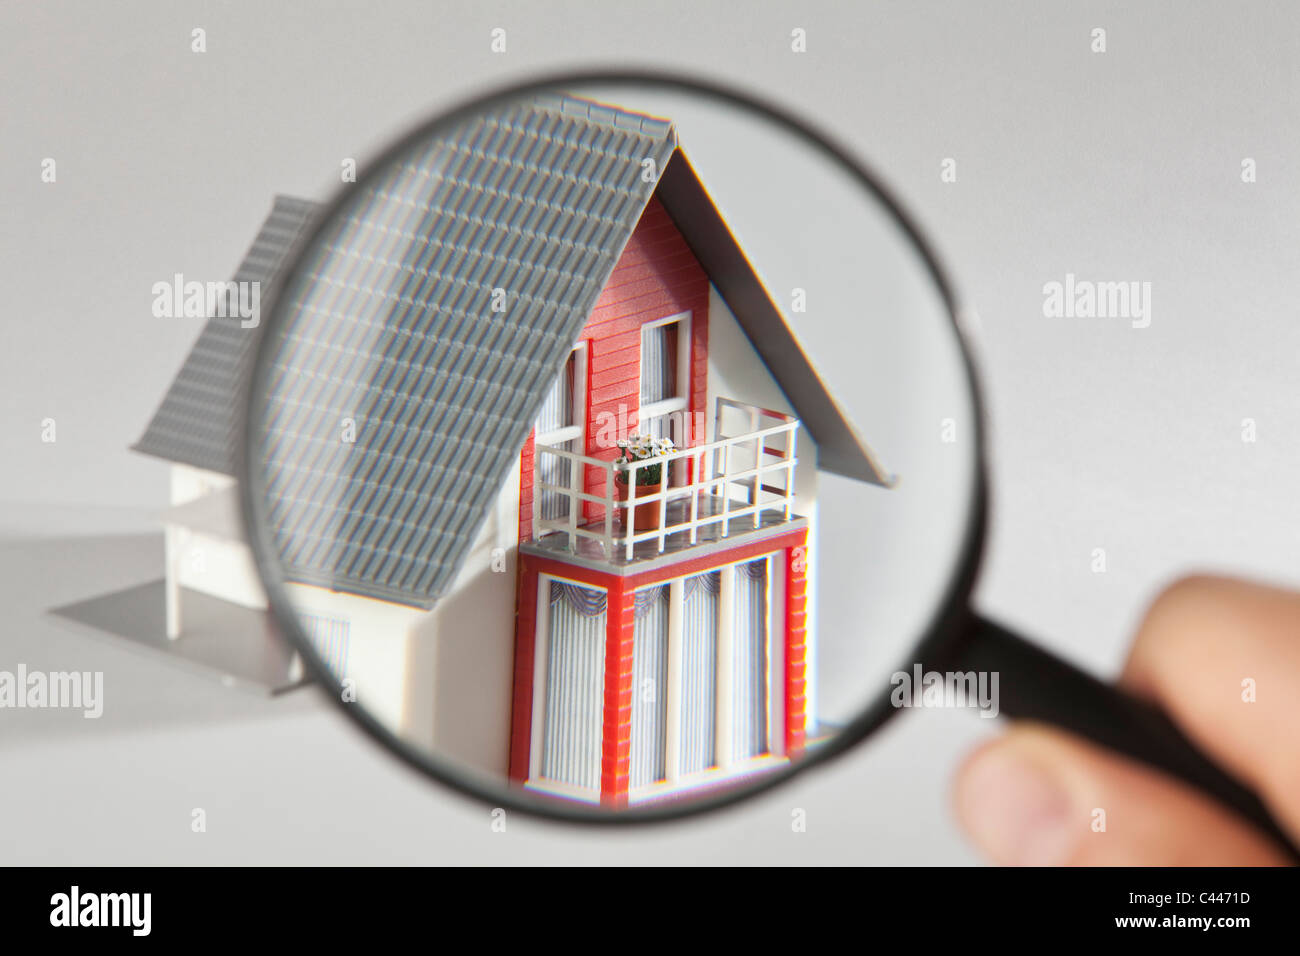 A model house viewed through a magnifying glass - Stock Image